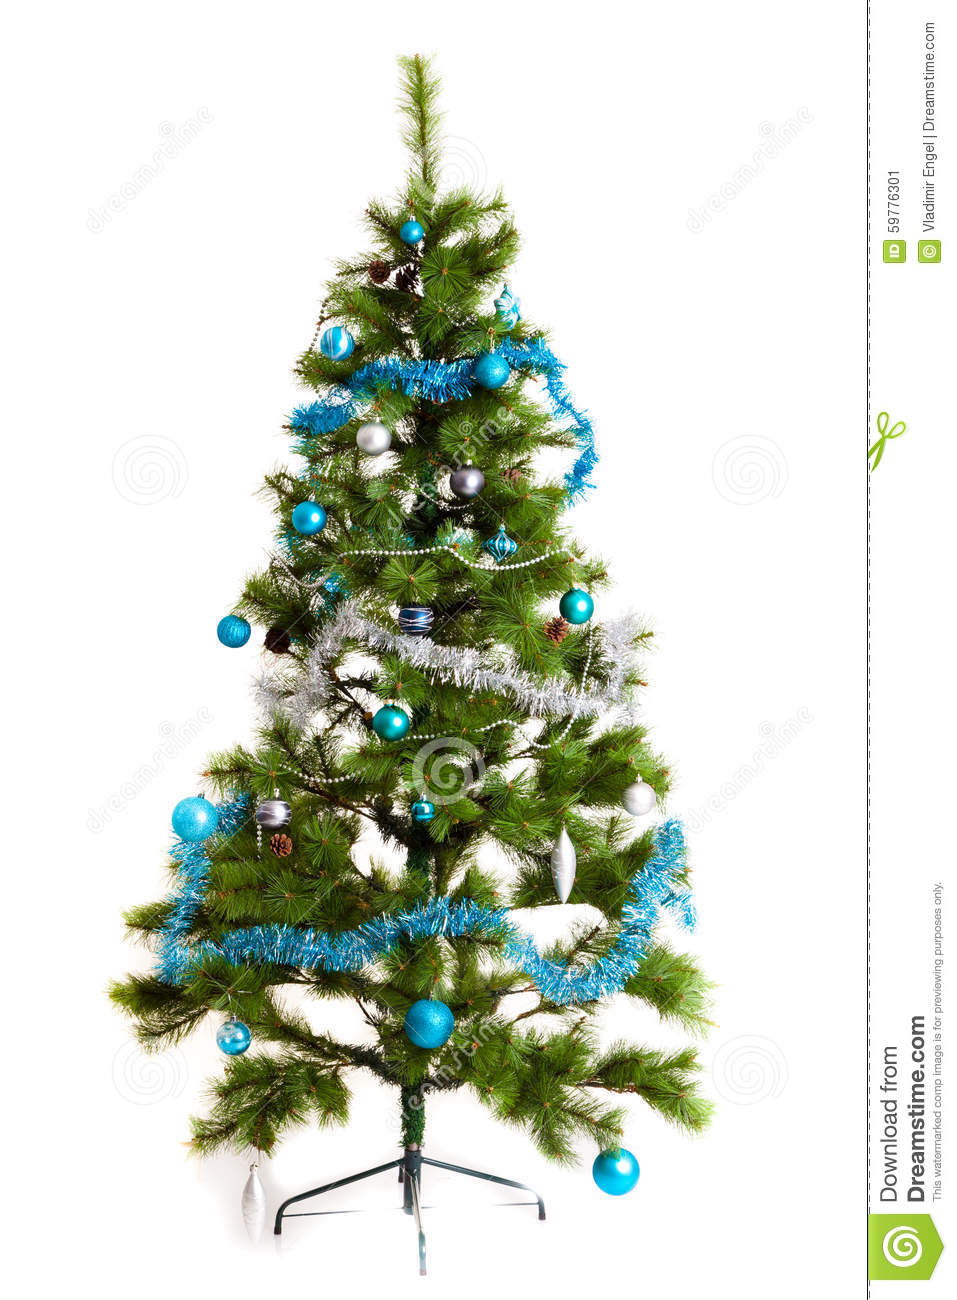 Isolated christmas tree decorations 2016 happy new year for New christmas decorations